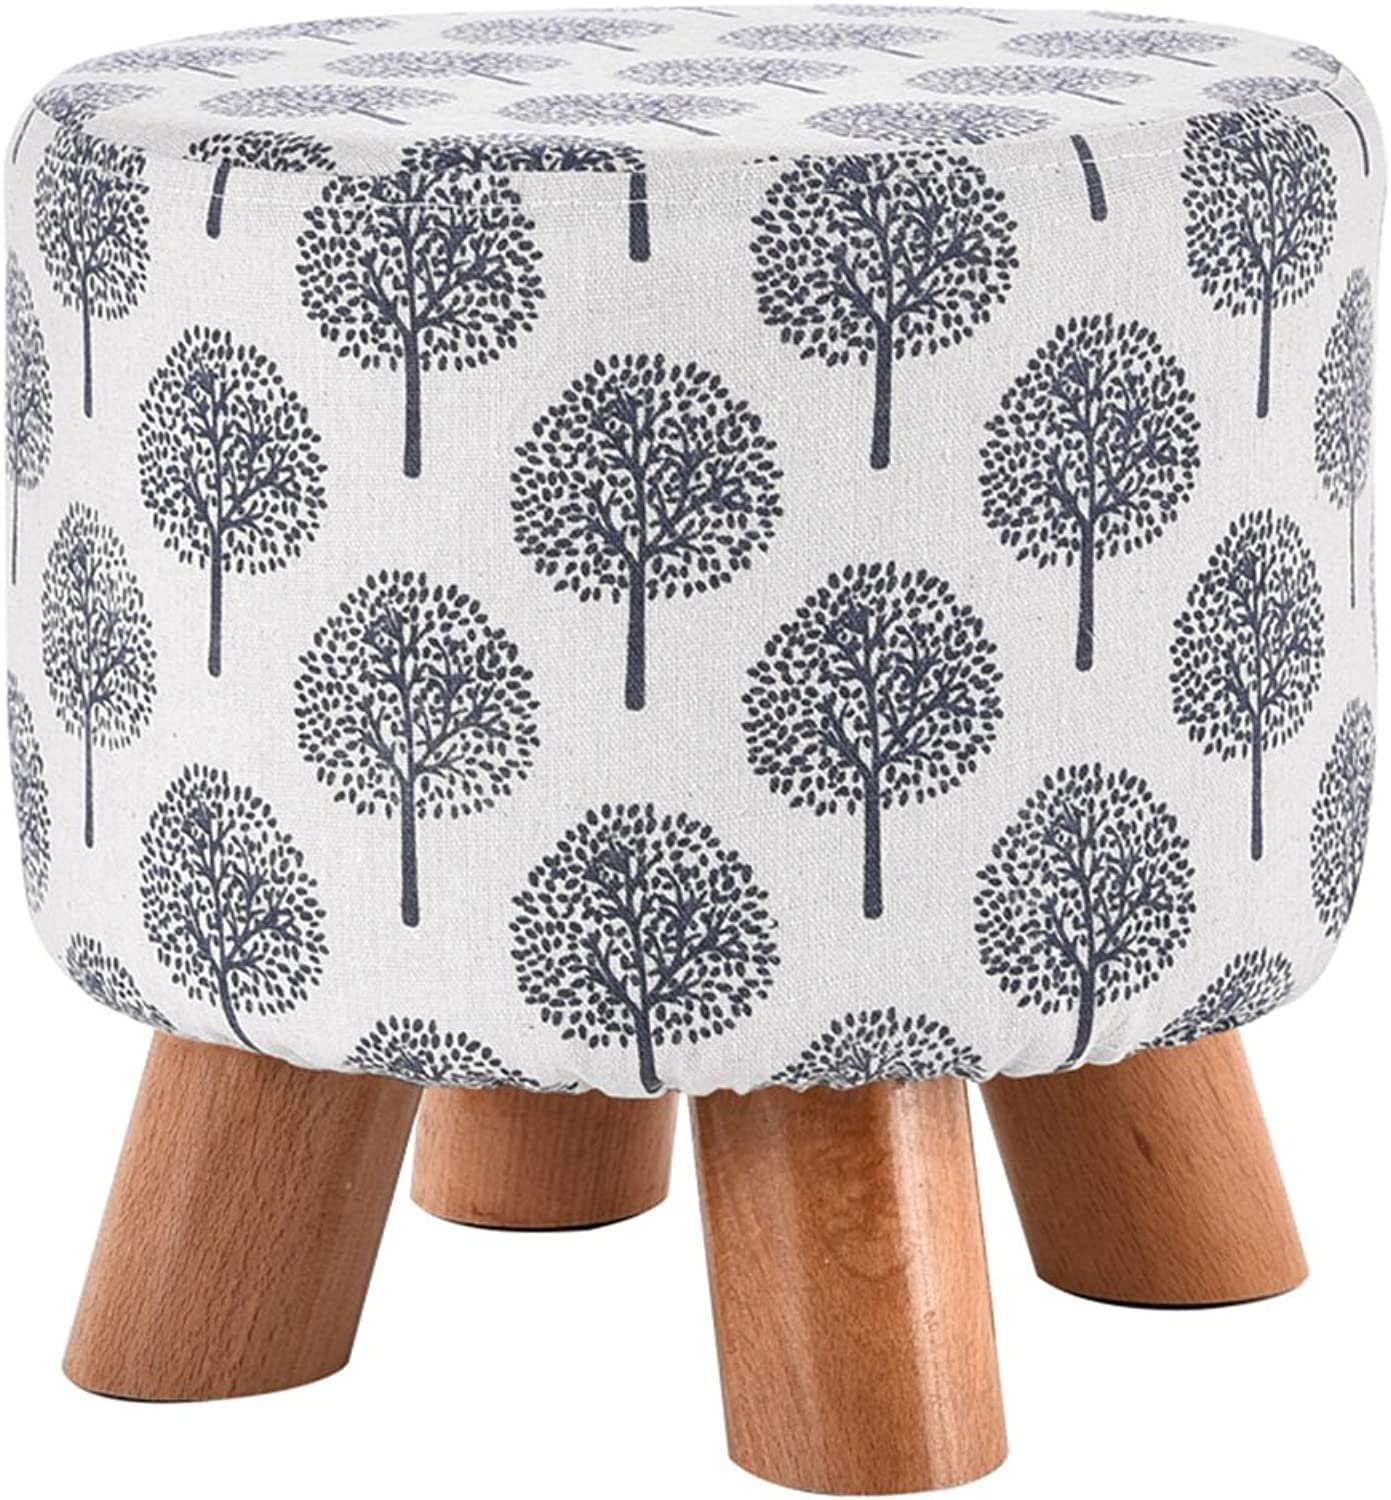 Solid Wood Home stool Living Room for shoes stool Fashion Adult stool Fabric Sofa stool Bench stool stool (color   B)